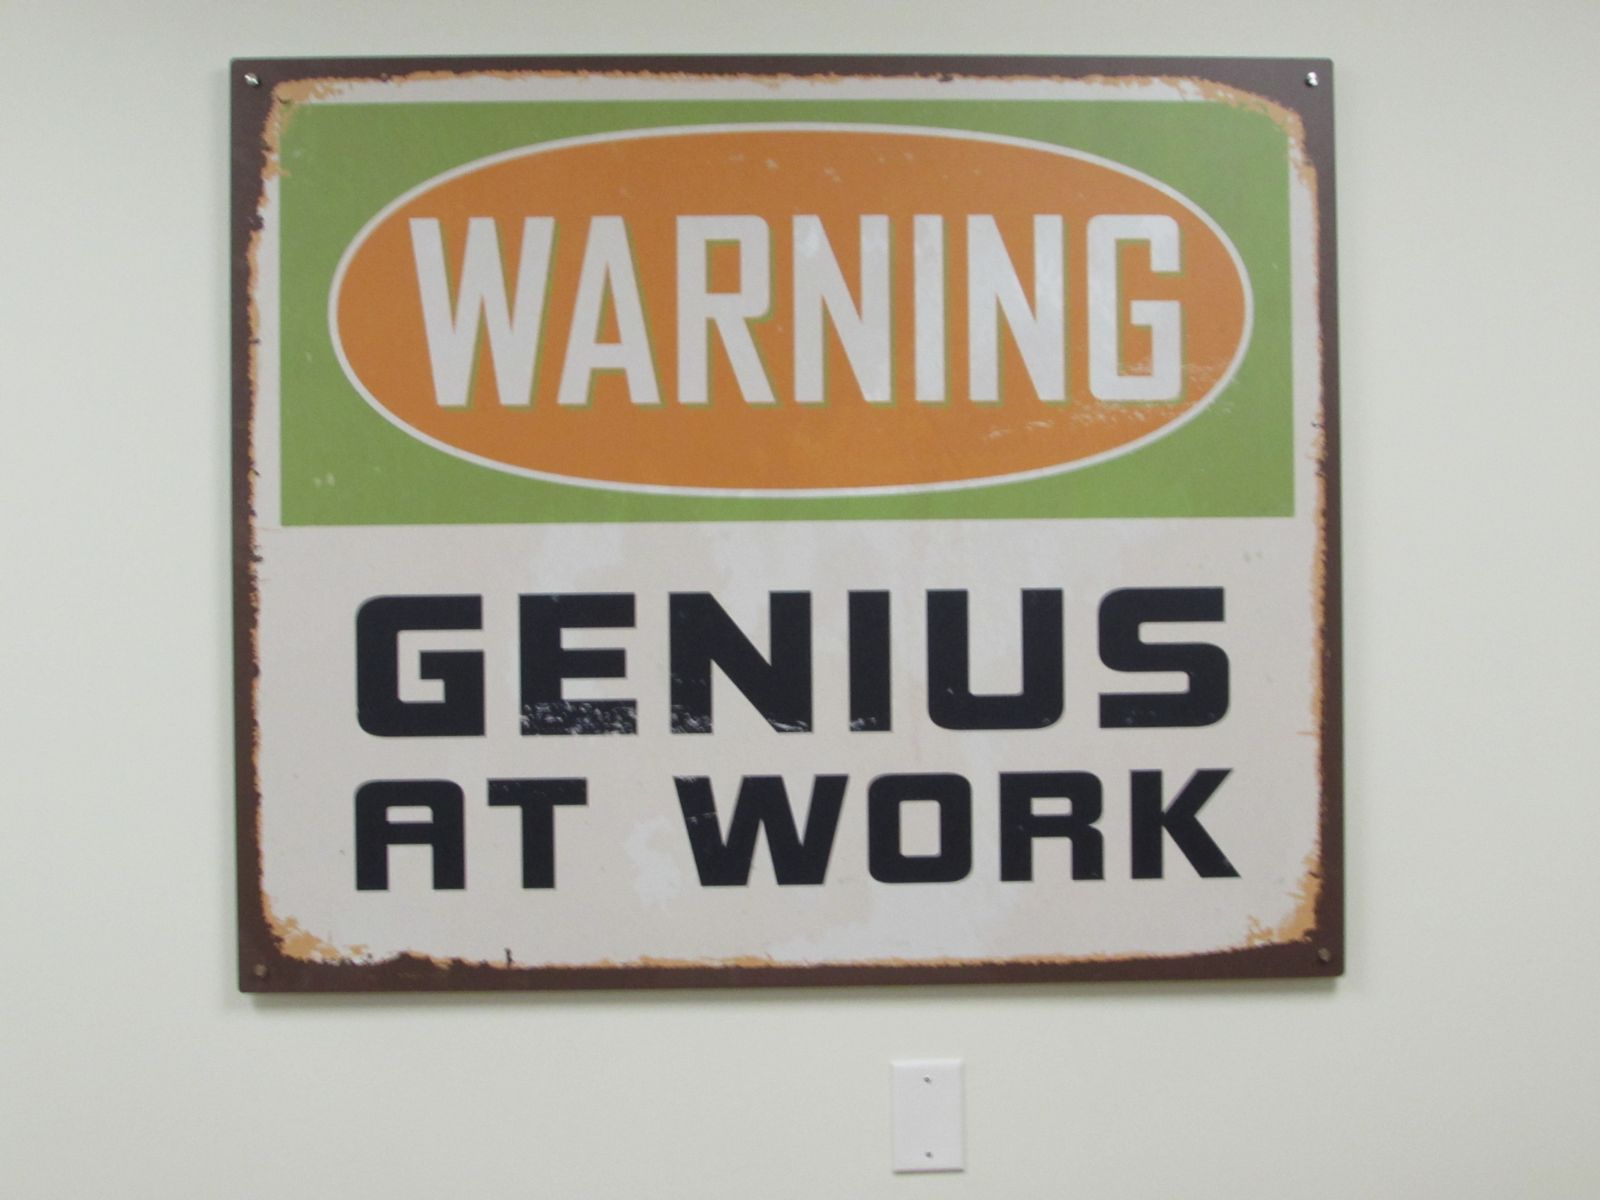 genius at work sign